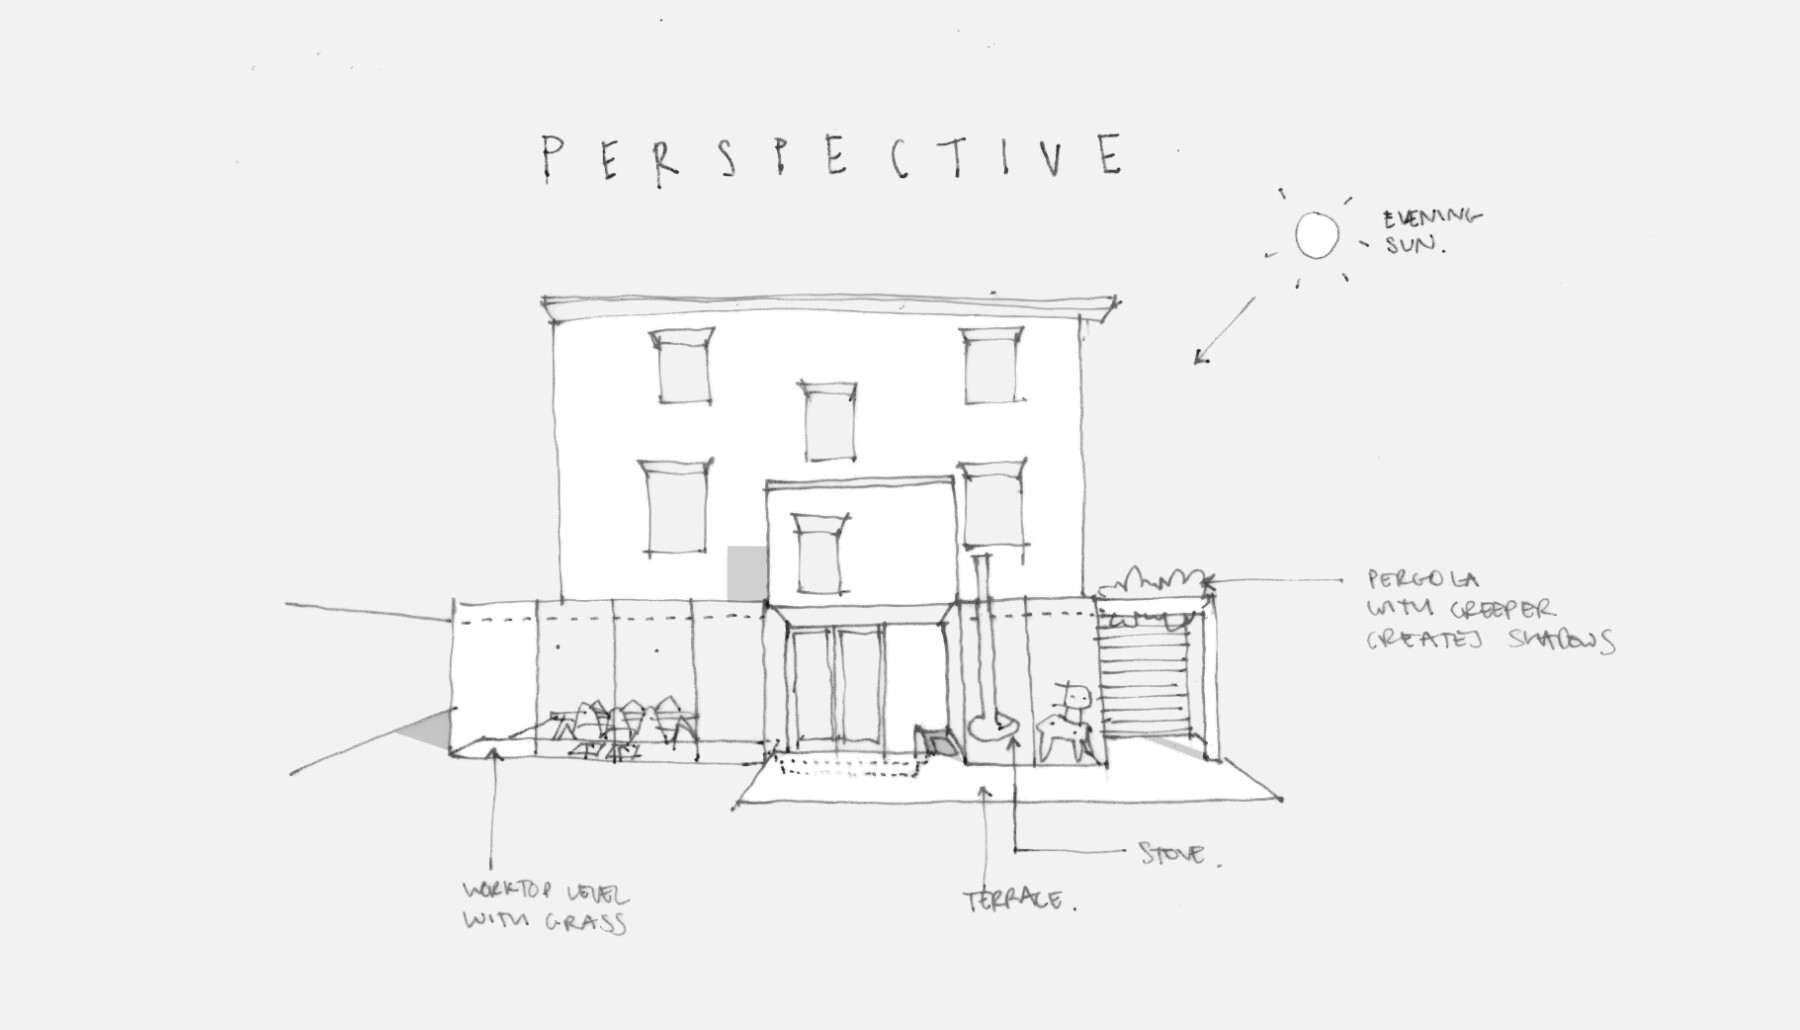 Dartmouth park house extension: sketch